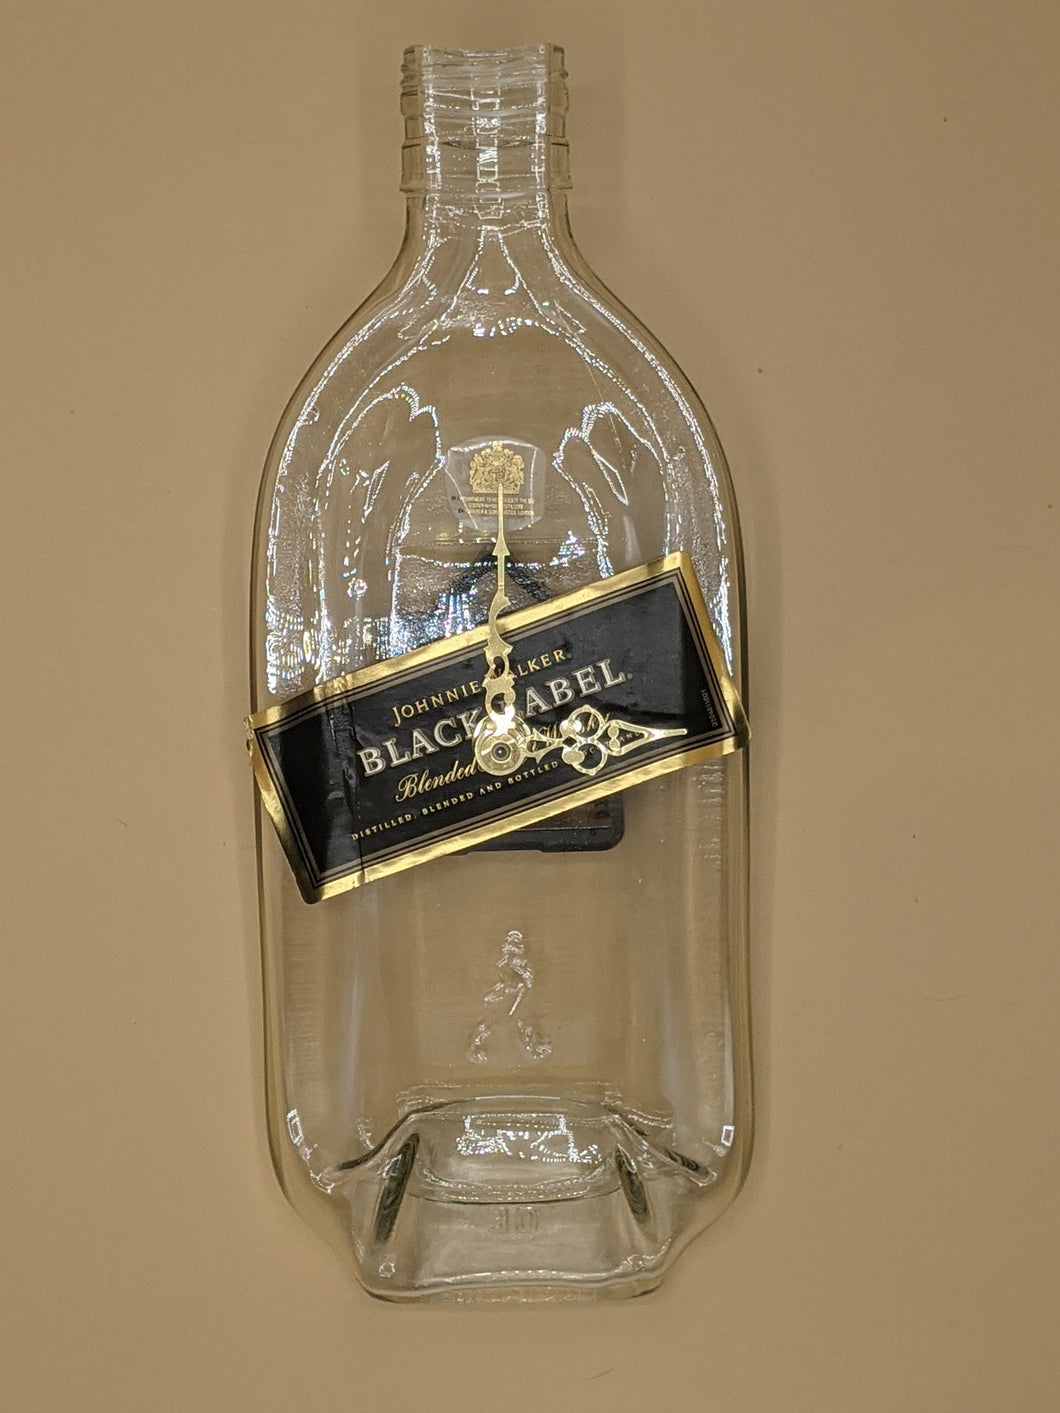 Johnny Walker Black Label whisky bottle clock